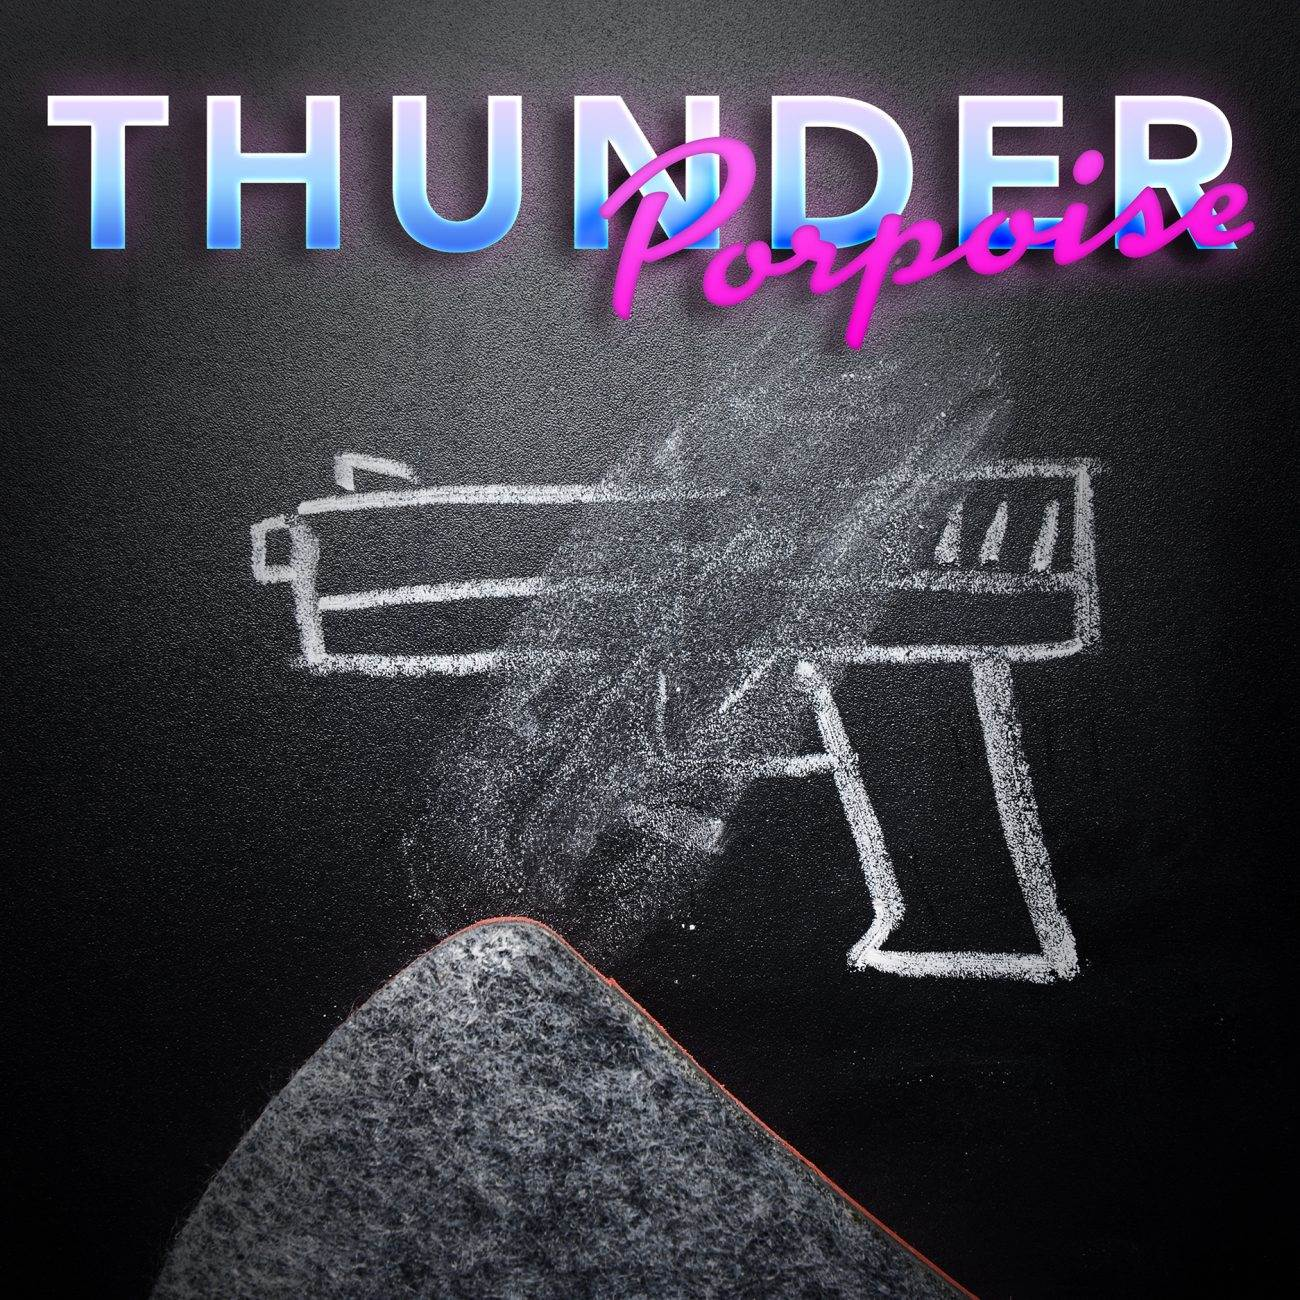 You Know the Ones 1300x1300 - Thunder Porpoise Releases Emotional Track For Charity to End Gun Violence